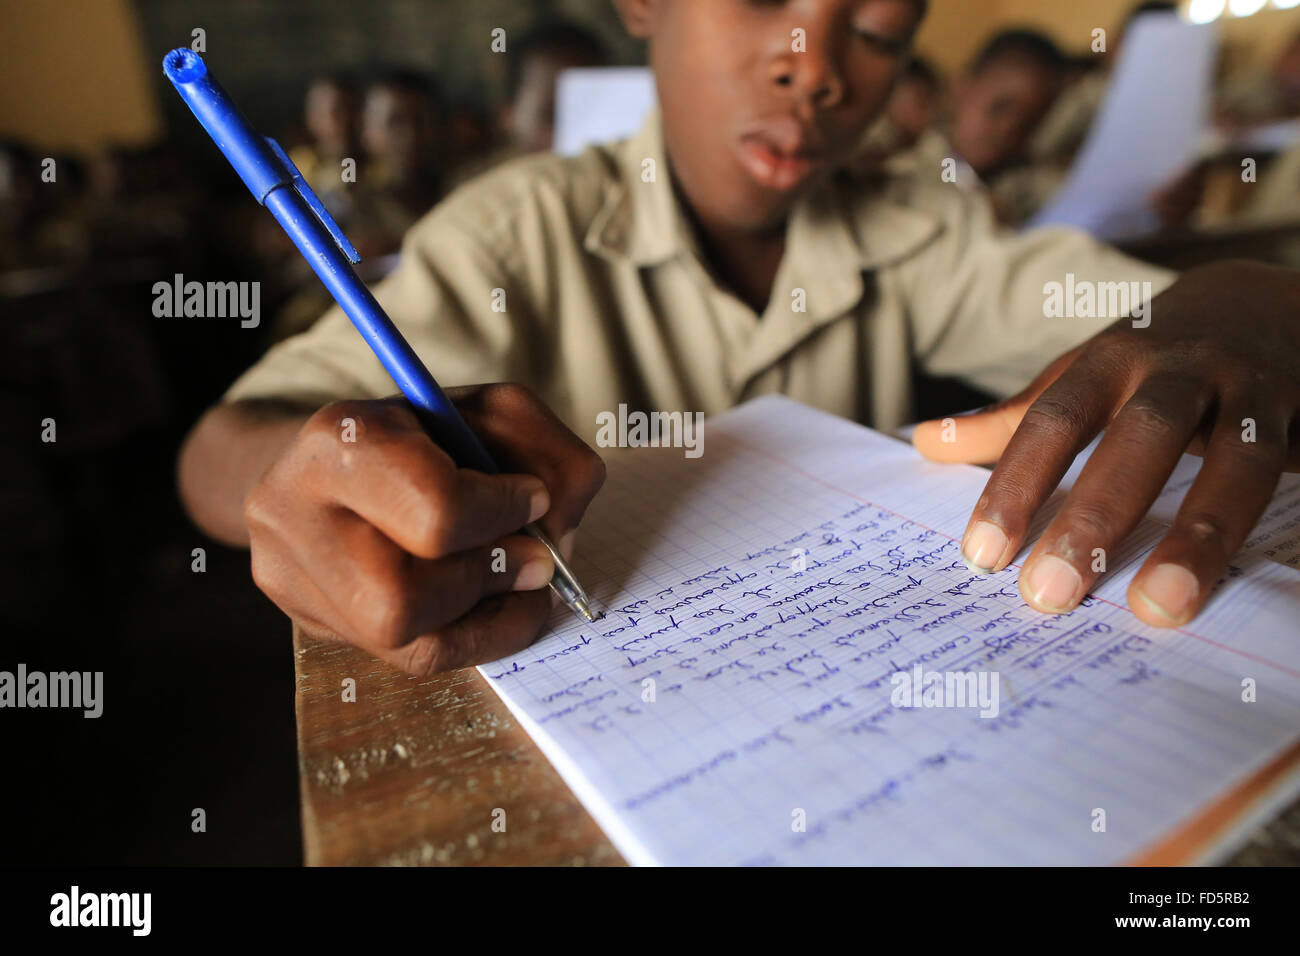 Grammar course. Primary School. - Stock Image